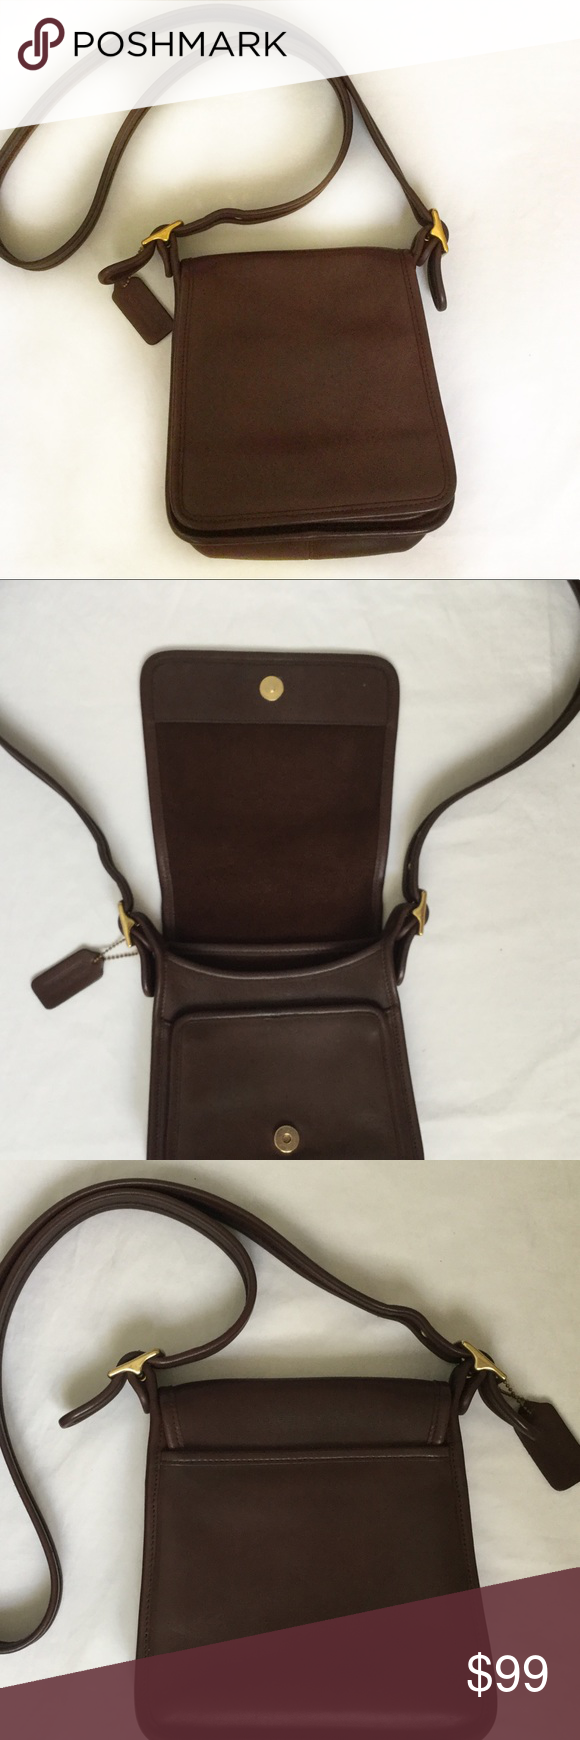 EUC Coach leather cross body bag. Like new. Beautiful dark brown Leather crossbody bag. Authentic vintage Coach. I never carried it -- it has been sitting in the back of my closet for years! So it is still stiff leather. Zero wear inside. All brass buckles are in great condition. Snap closure on front fold over flap. Exterior pocket on each side.inside zipper pocket. I just polished + buffed it so it is ready to carry around town! Coach Bags Crossbody Bags